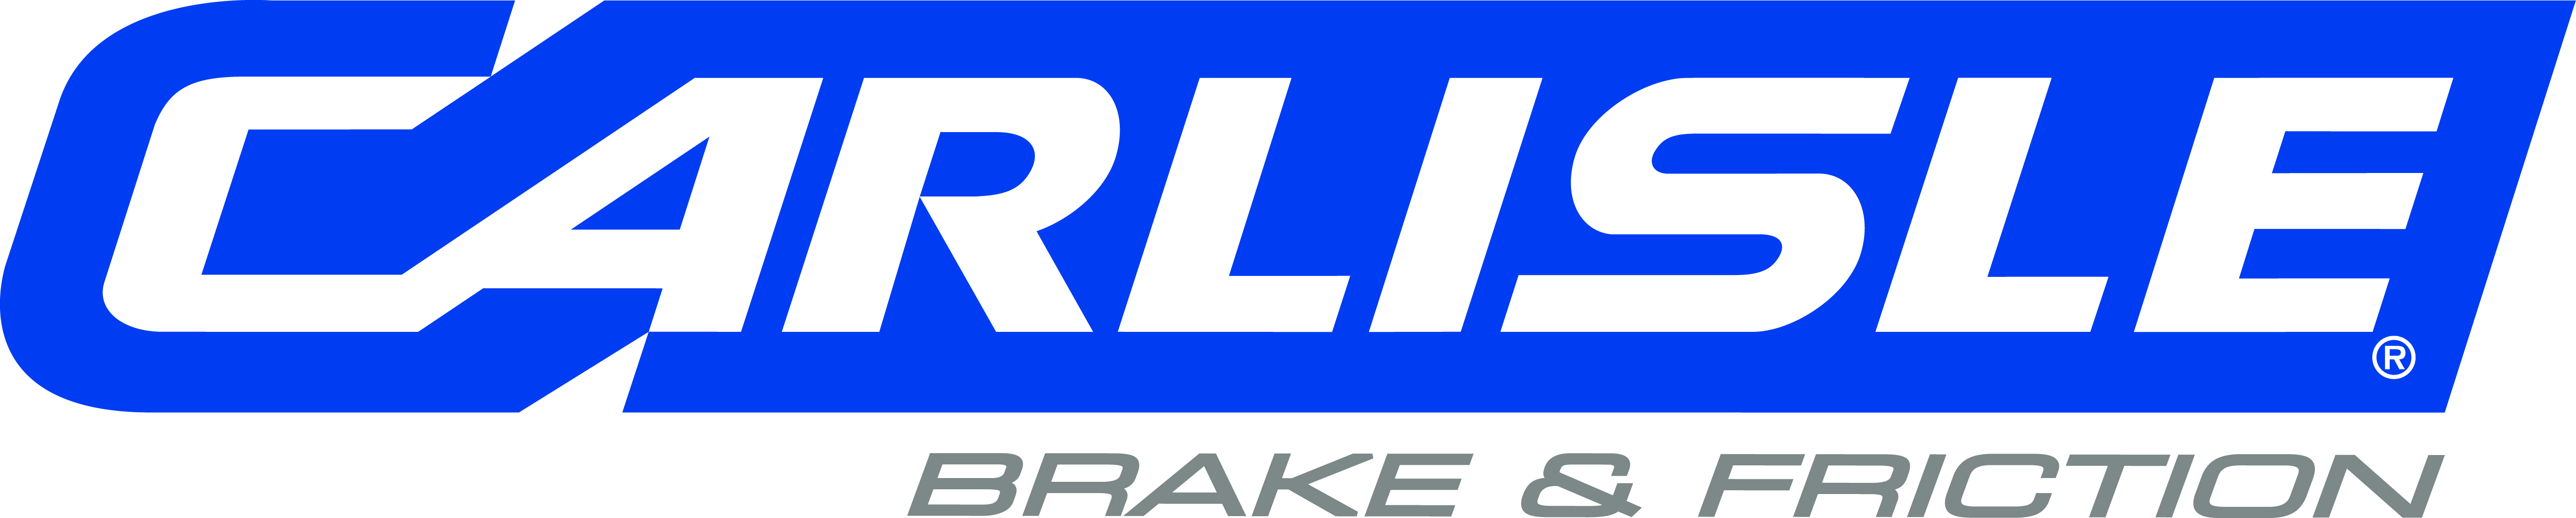 Carlisle_Brake&Friction